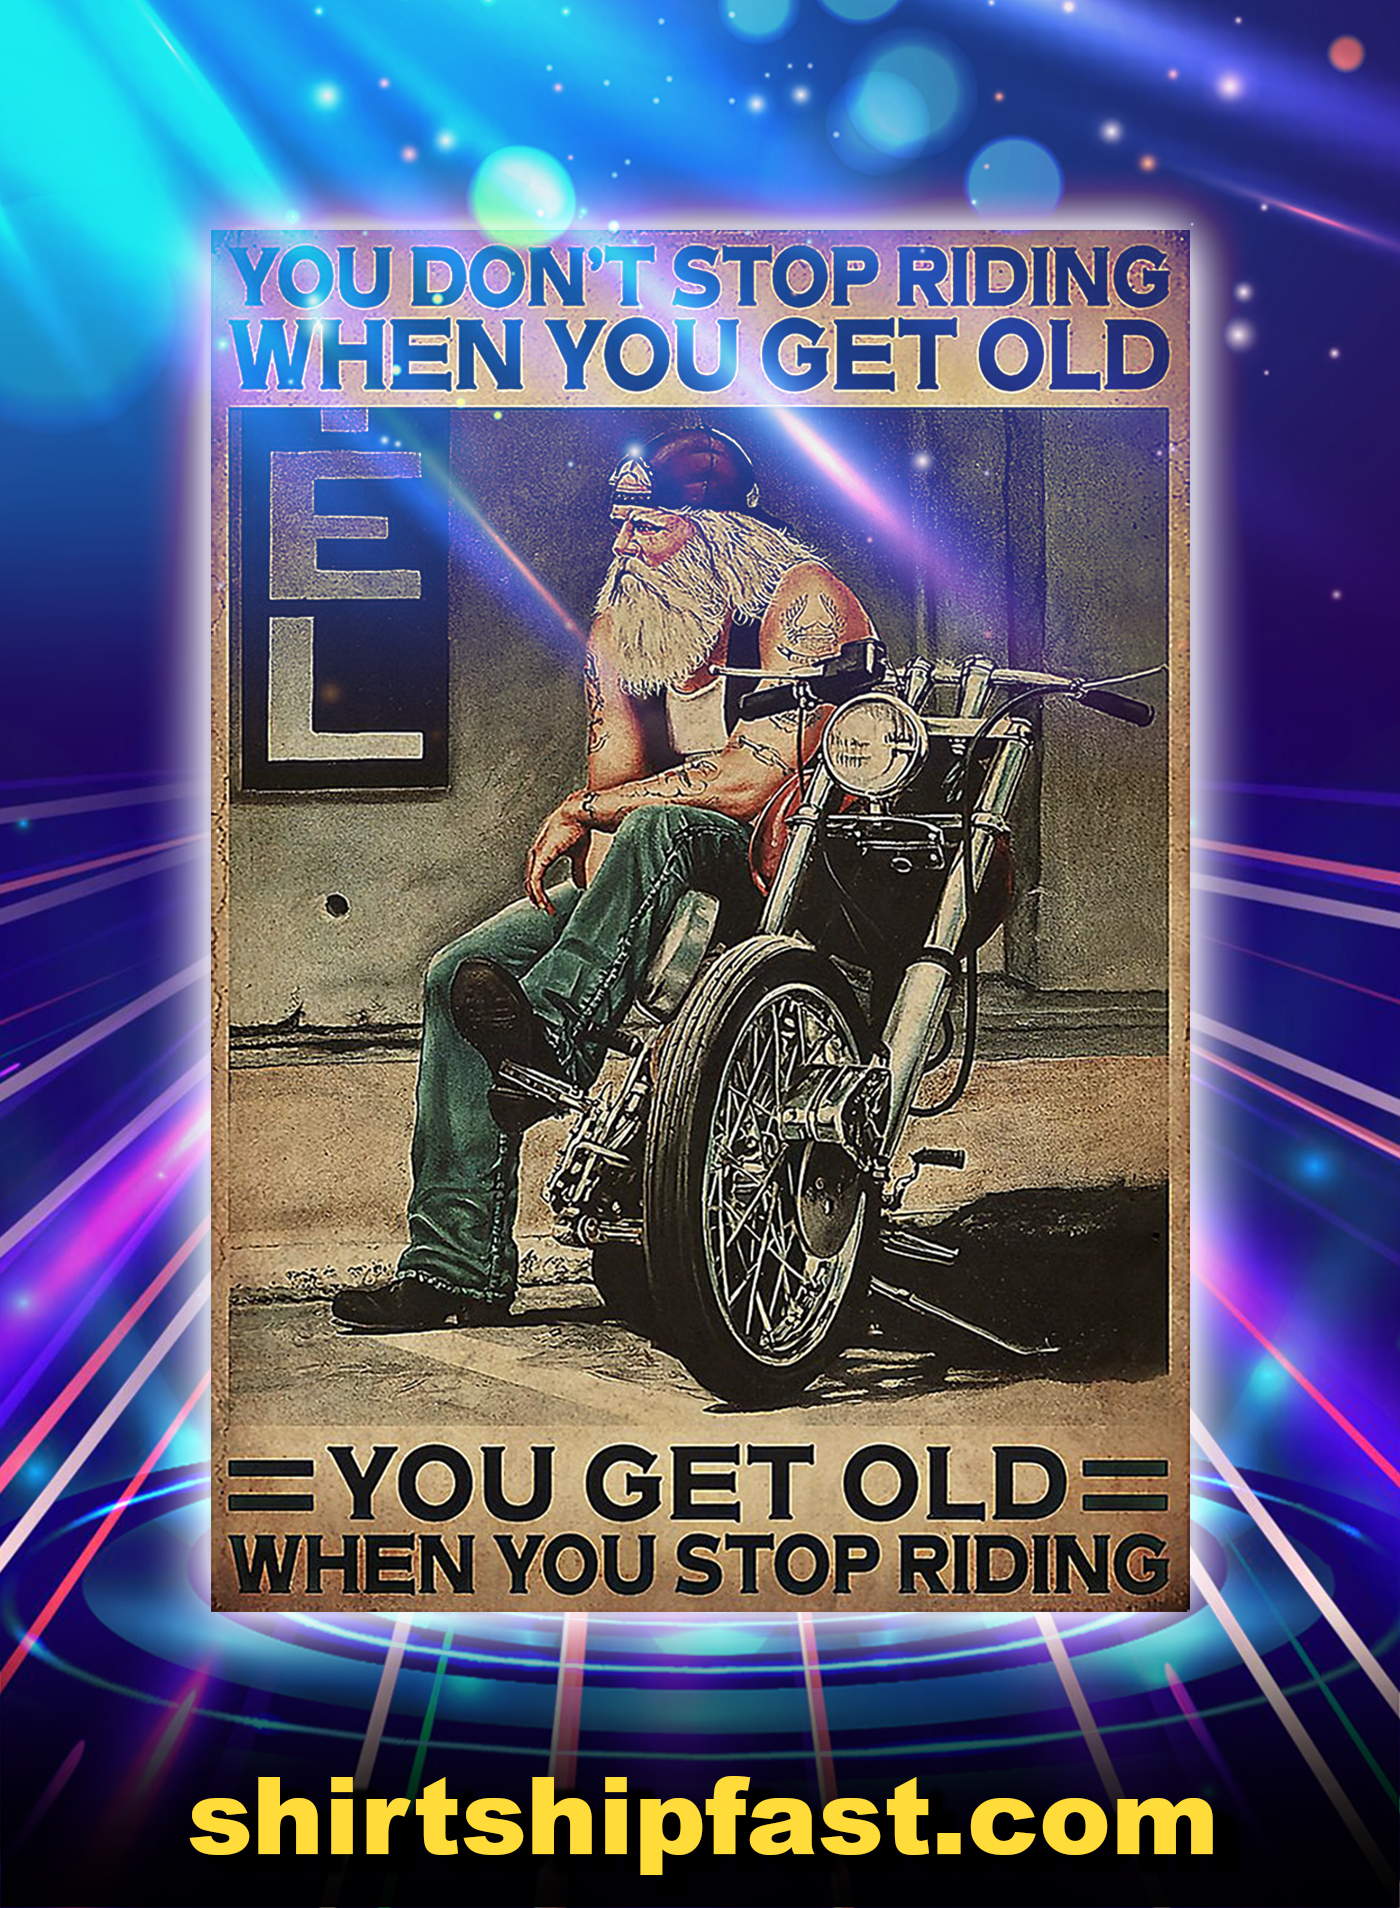 Motorcycle you don't stop racing when you get old poster - A1